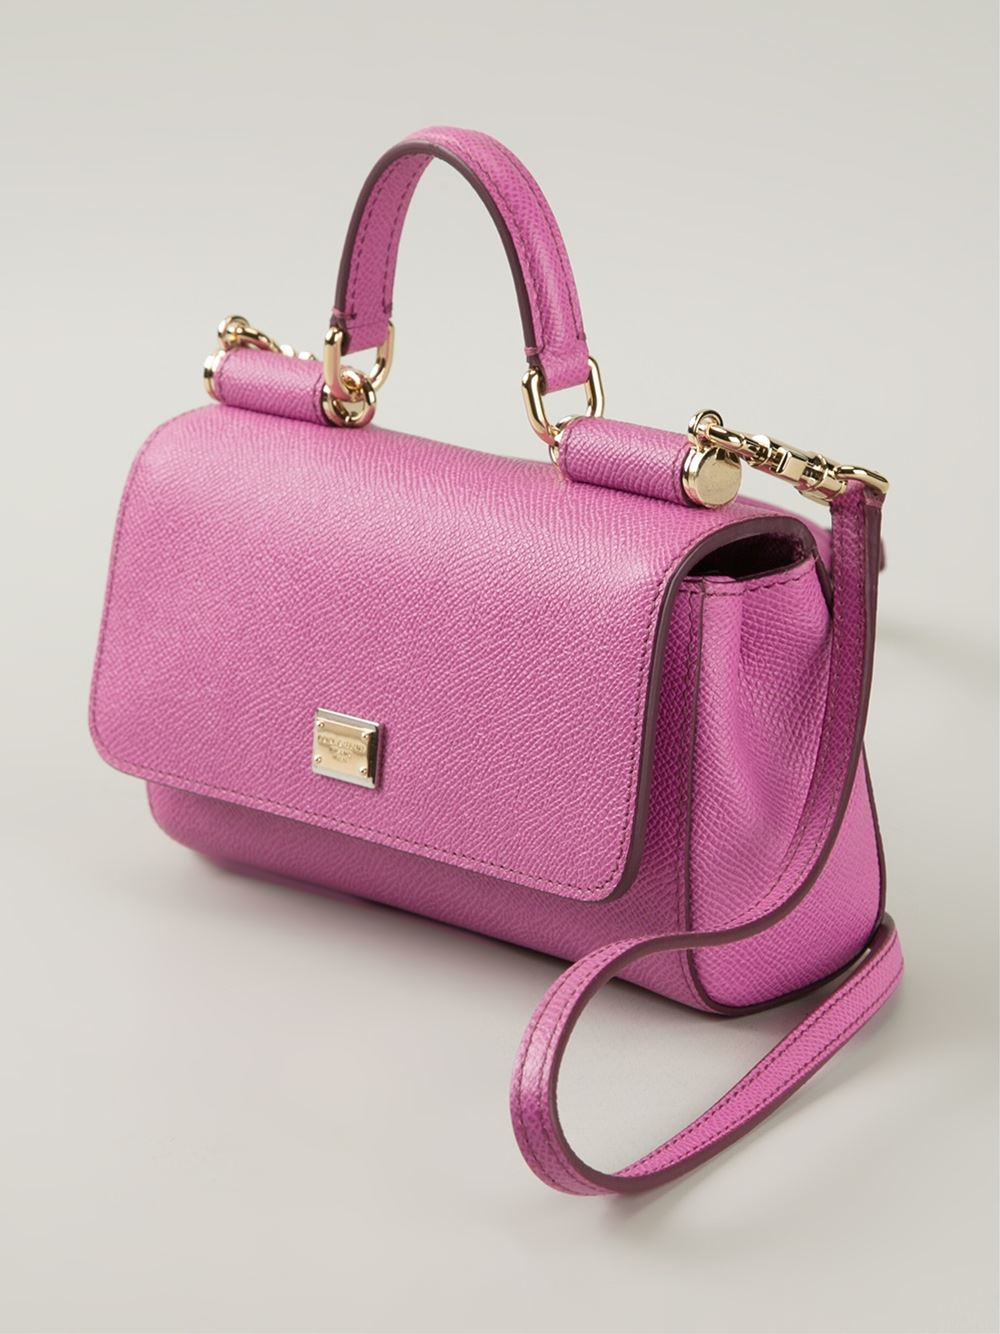 Sicily Small Textured-leather Tote - Pink Dolce & Gabbana kwh3Re2